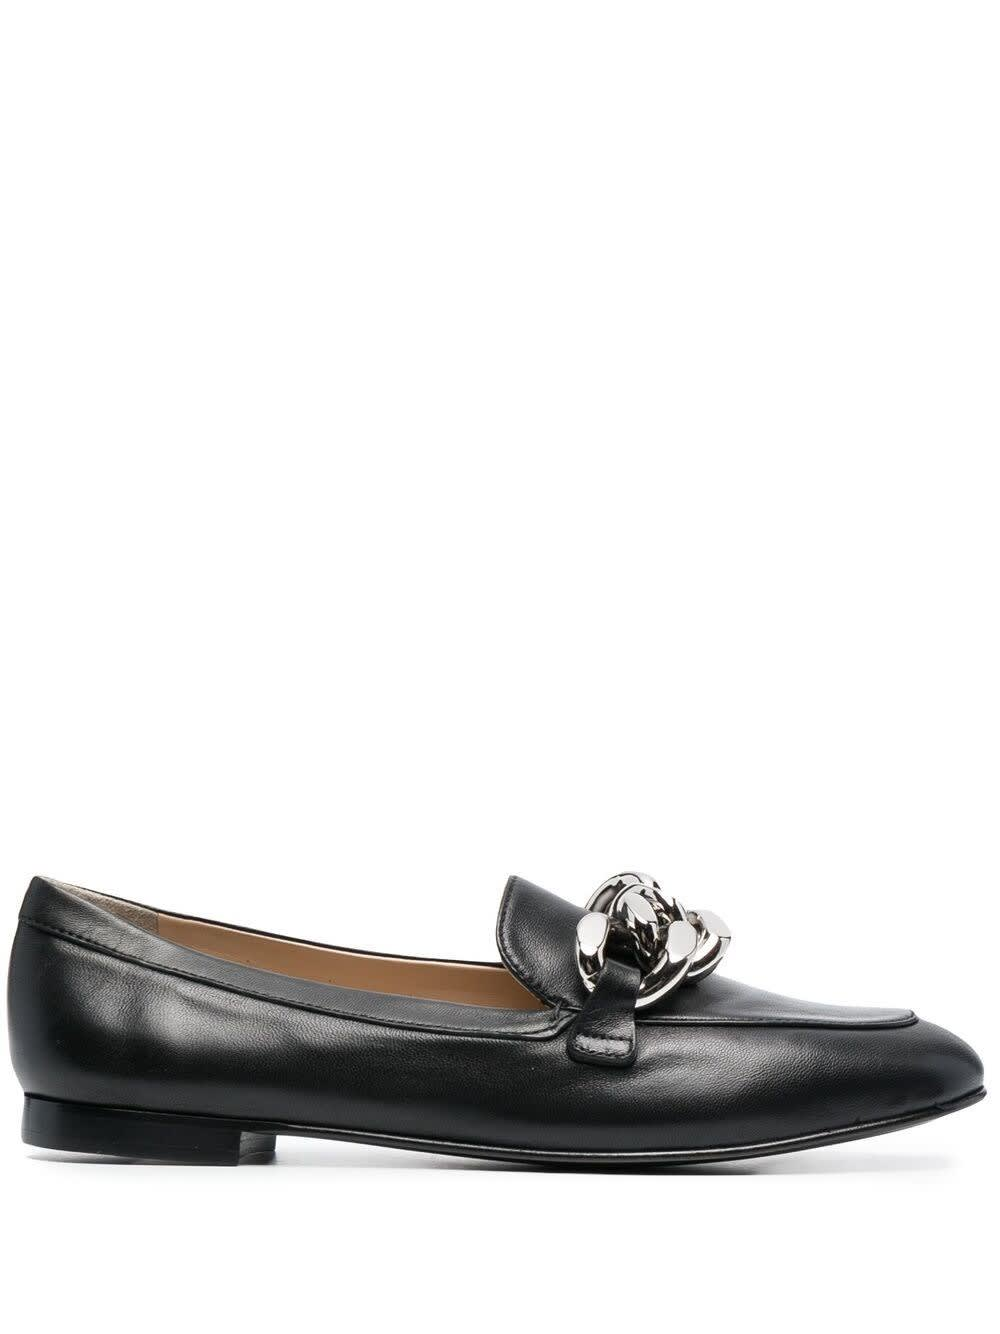 Casadei Shoes LEATHER LOAFERS WITH CHAIN BUCKLE